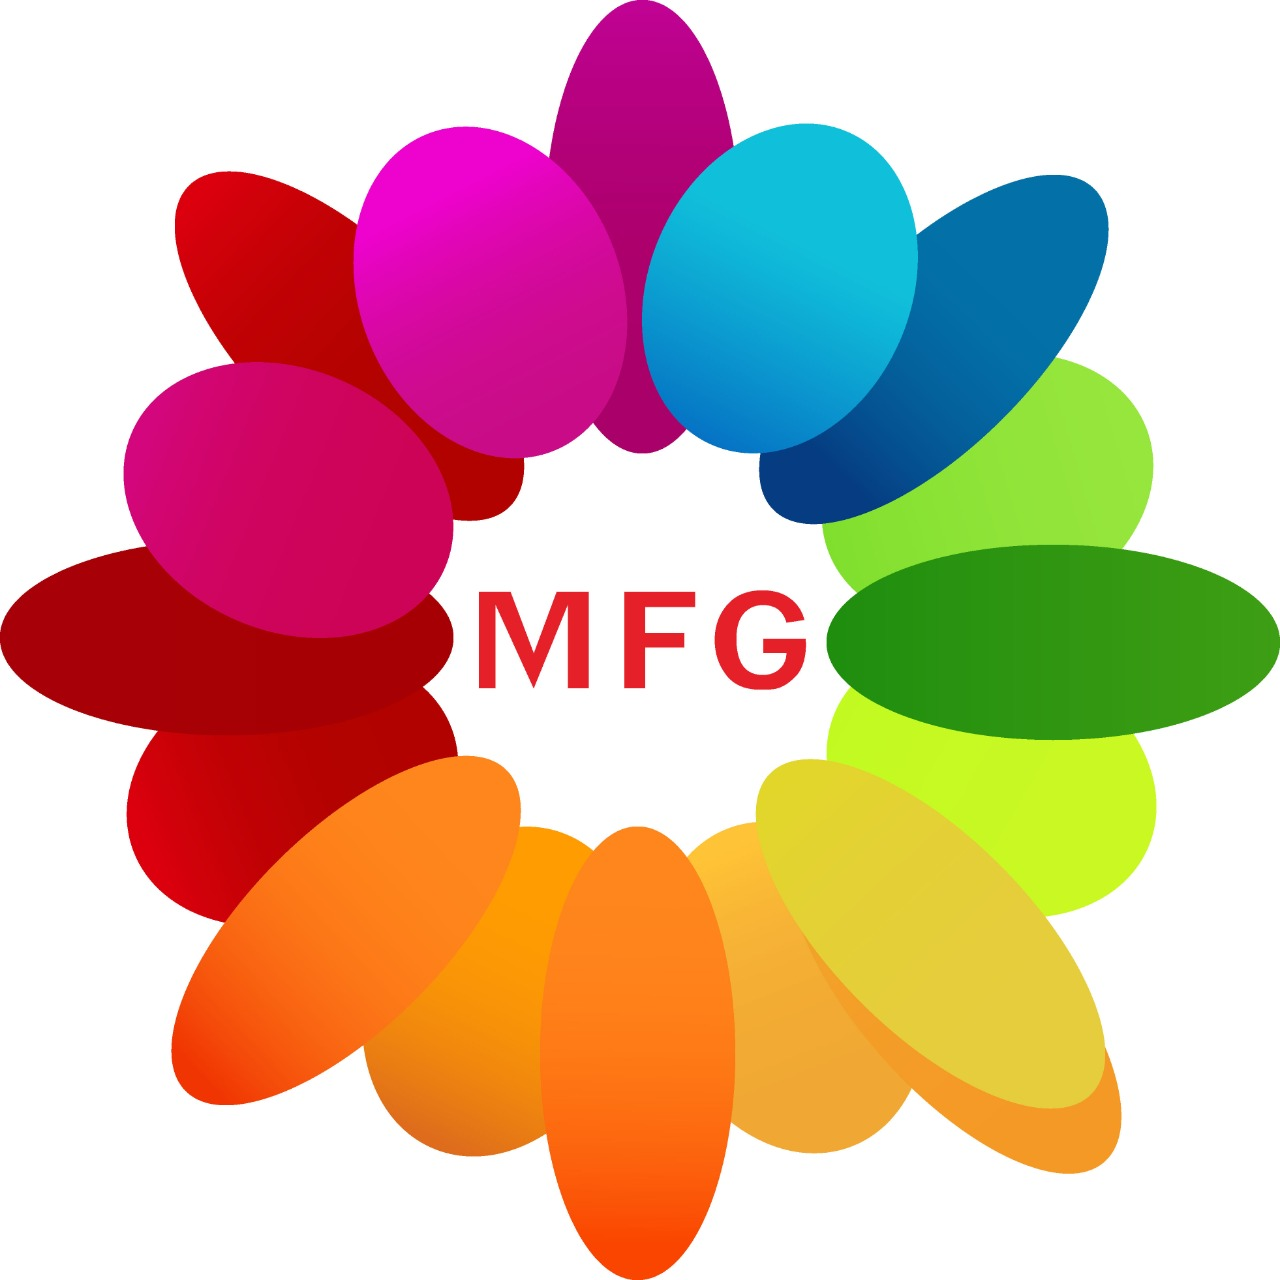 bunch of lavender orchids with white roses with box of 16 pcs rocher ferrero chocolates